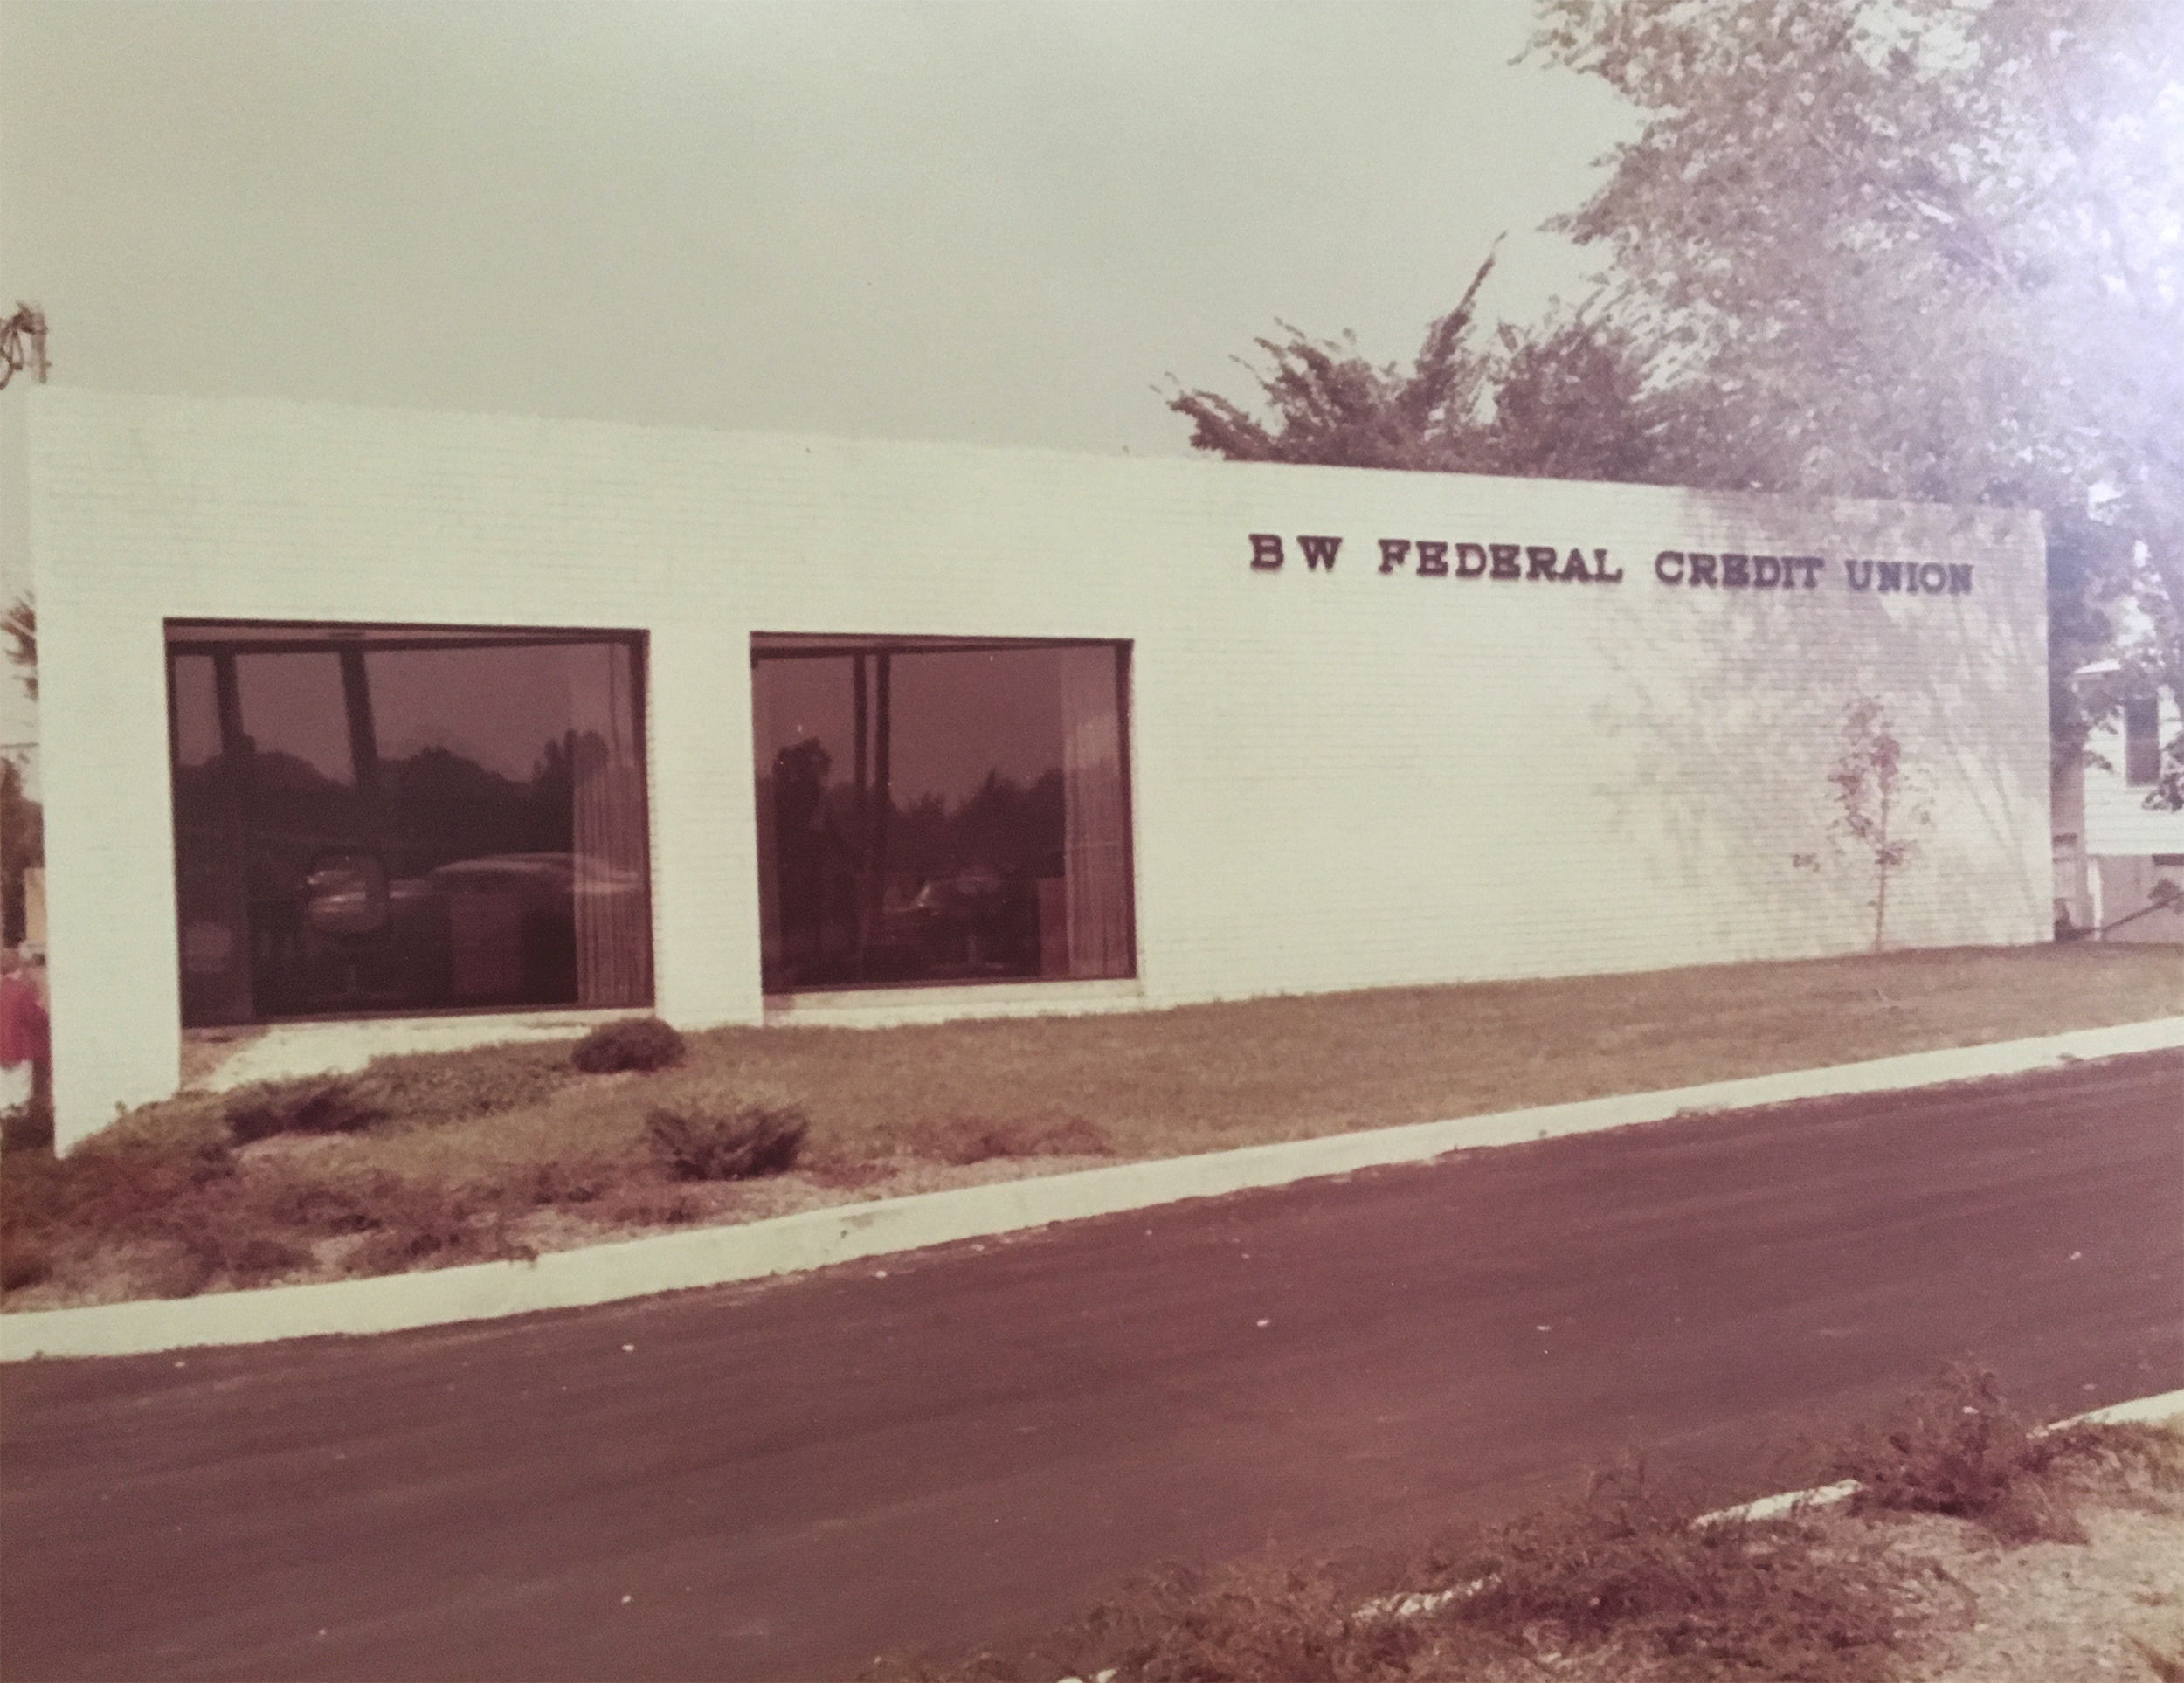 Image: Old photo of BWFCU